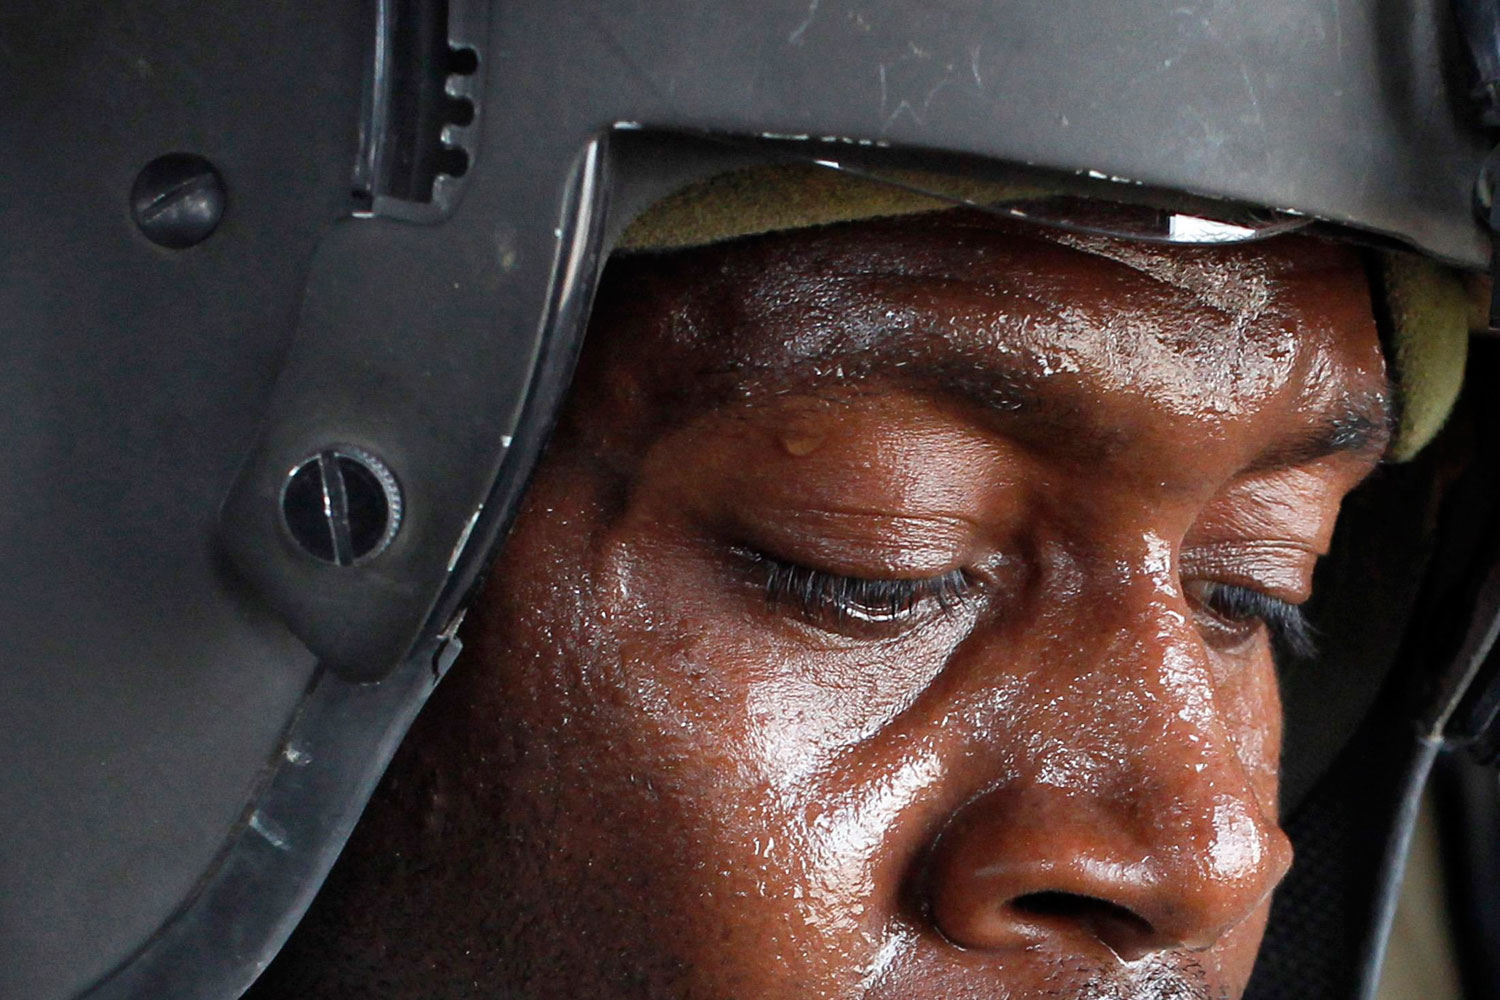 April 8, 2011. U.S. Army medic Tyrone Jordan of the 101st Combat Aviation brigade, aboard a medevac helicopter in Helmand province in Afghanistan, treats a Marine wounded by a gunshot. Several soldiers were killed in early April by friendly fire in Helmand.